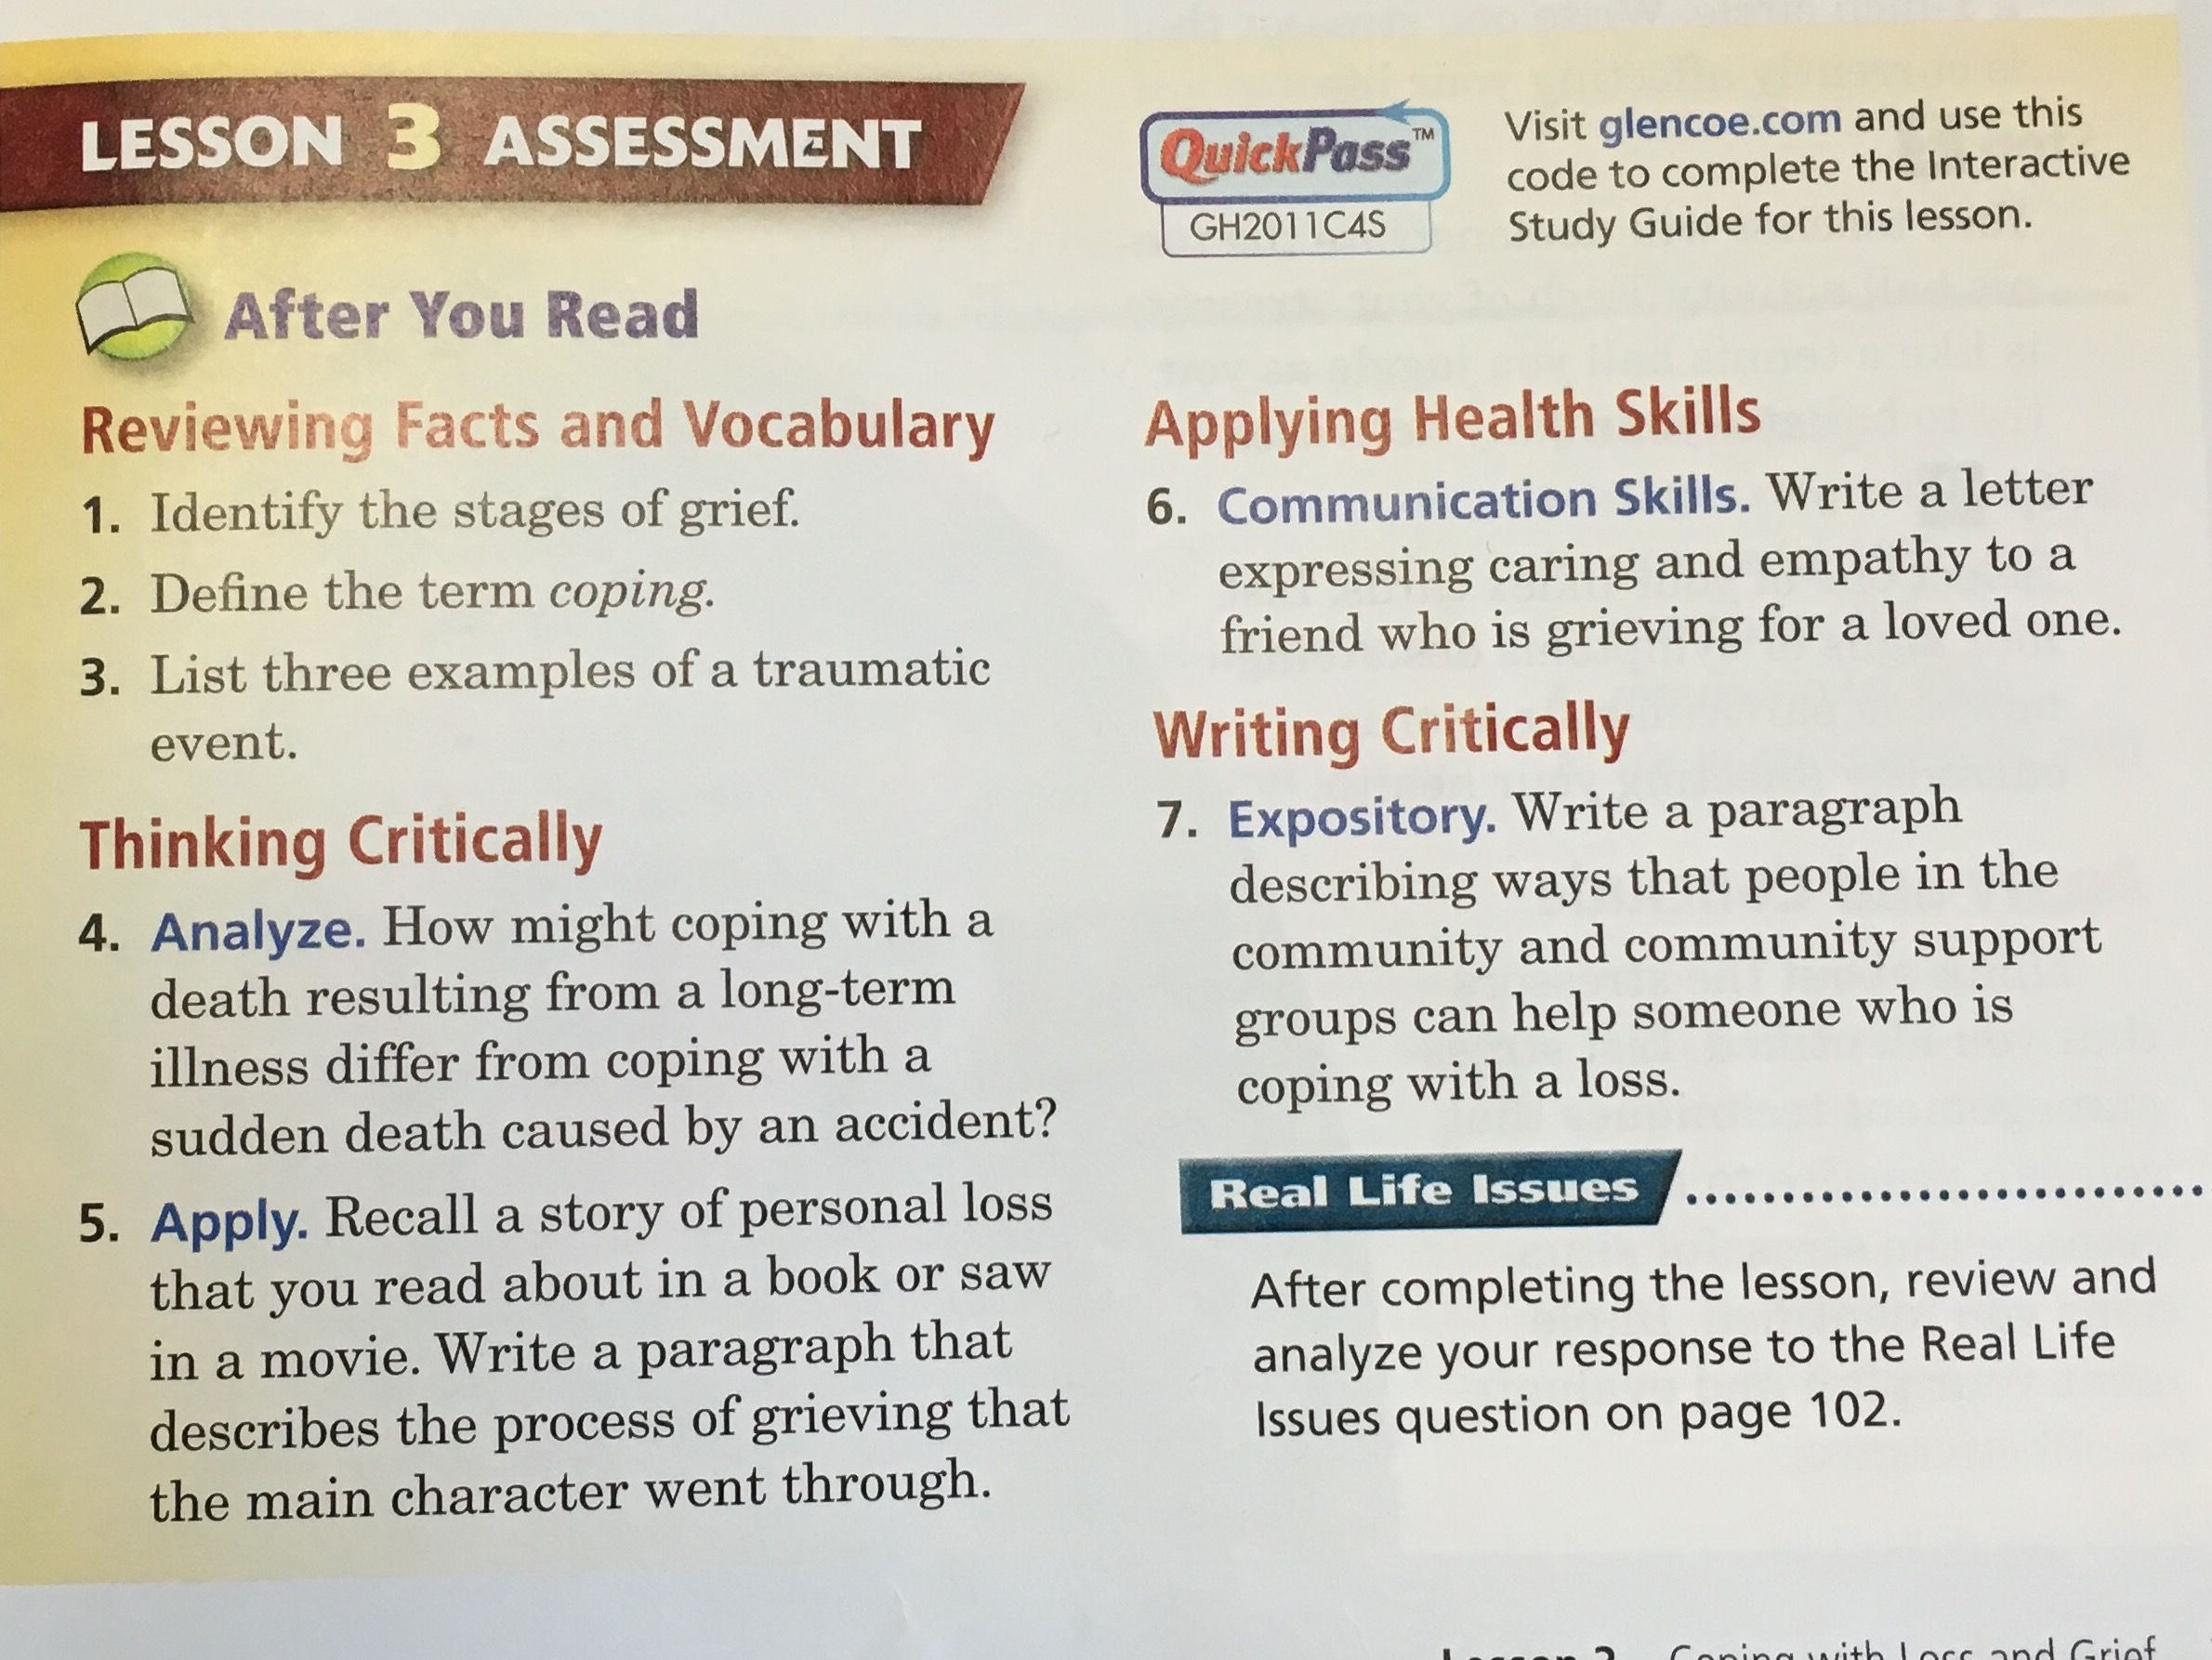 coping with a terminal illness essay Related post of coping with terminal illness essay a level textiles essay about myself decision making uk essay tolkien beowulf essay summary and response coping with.